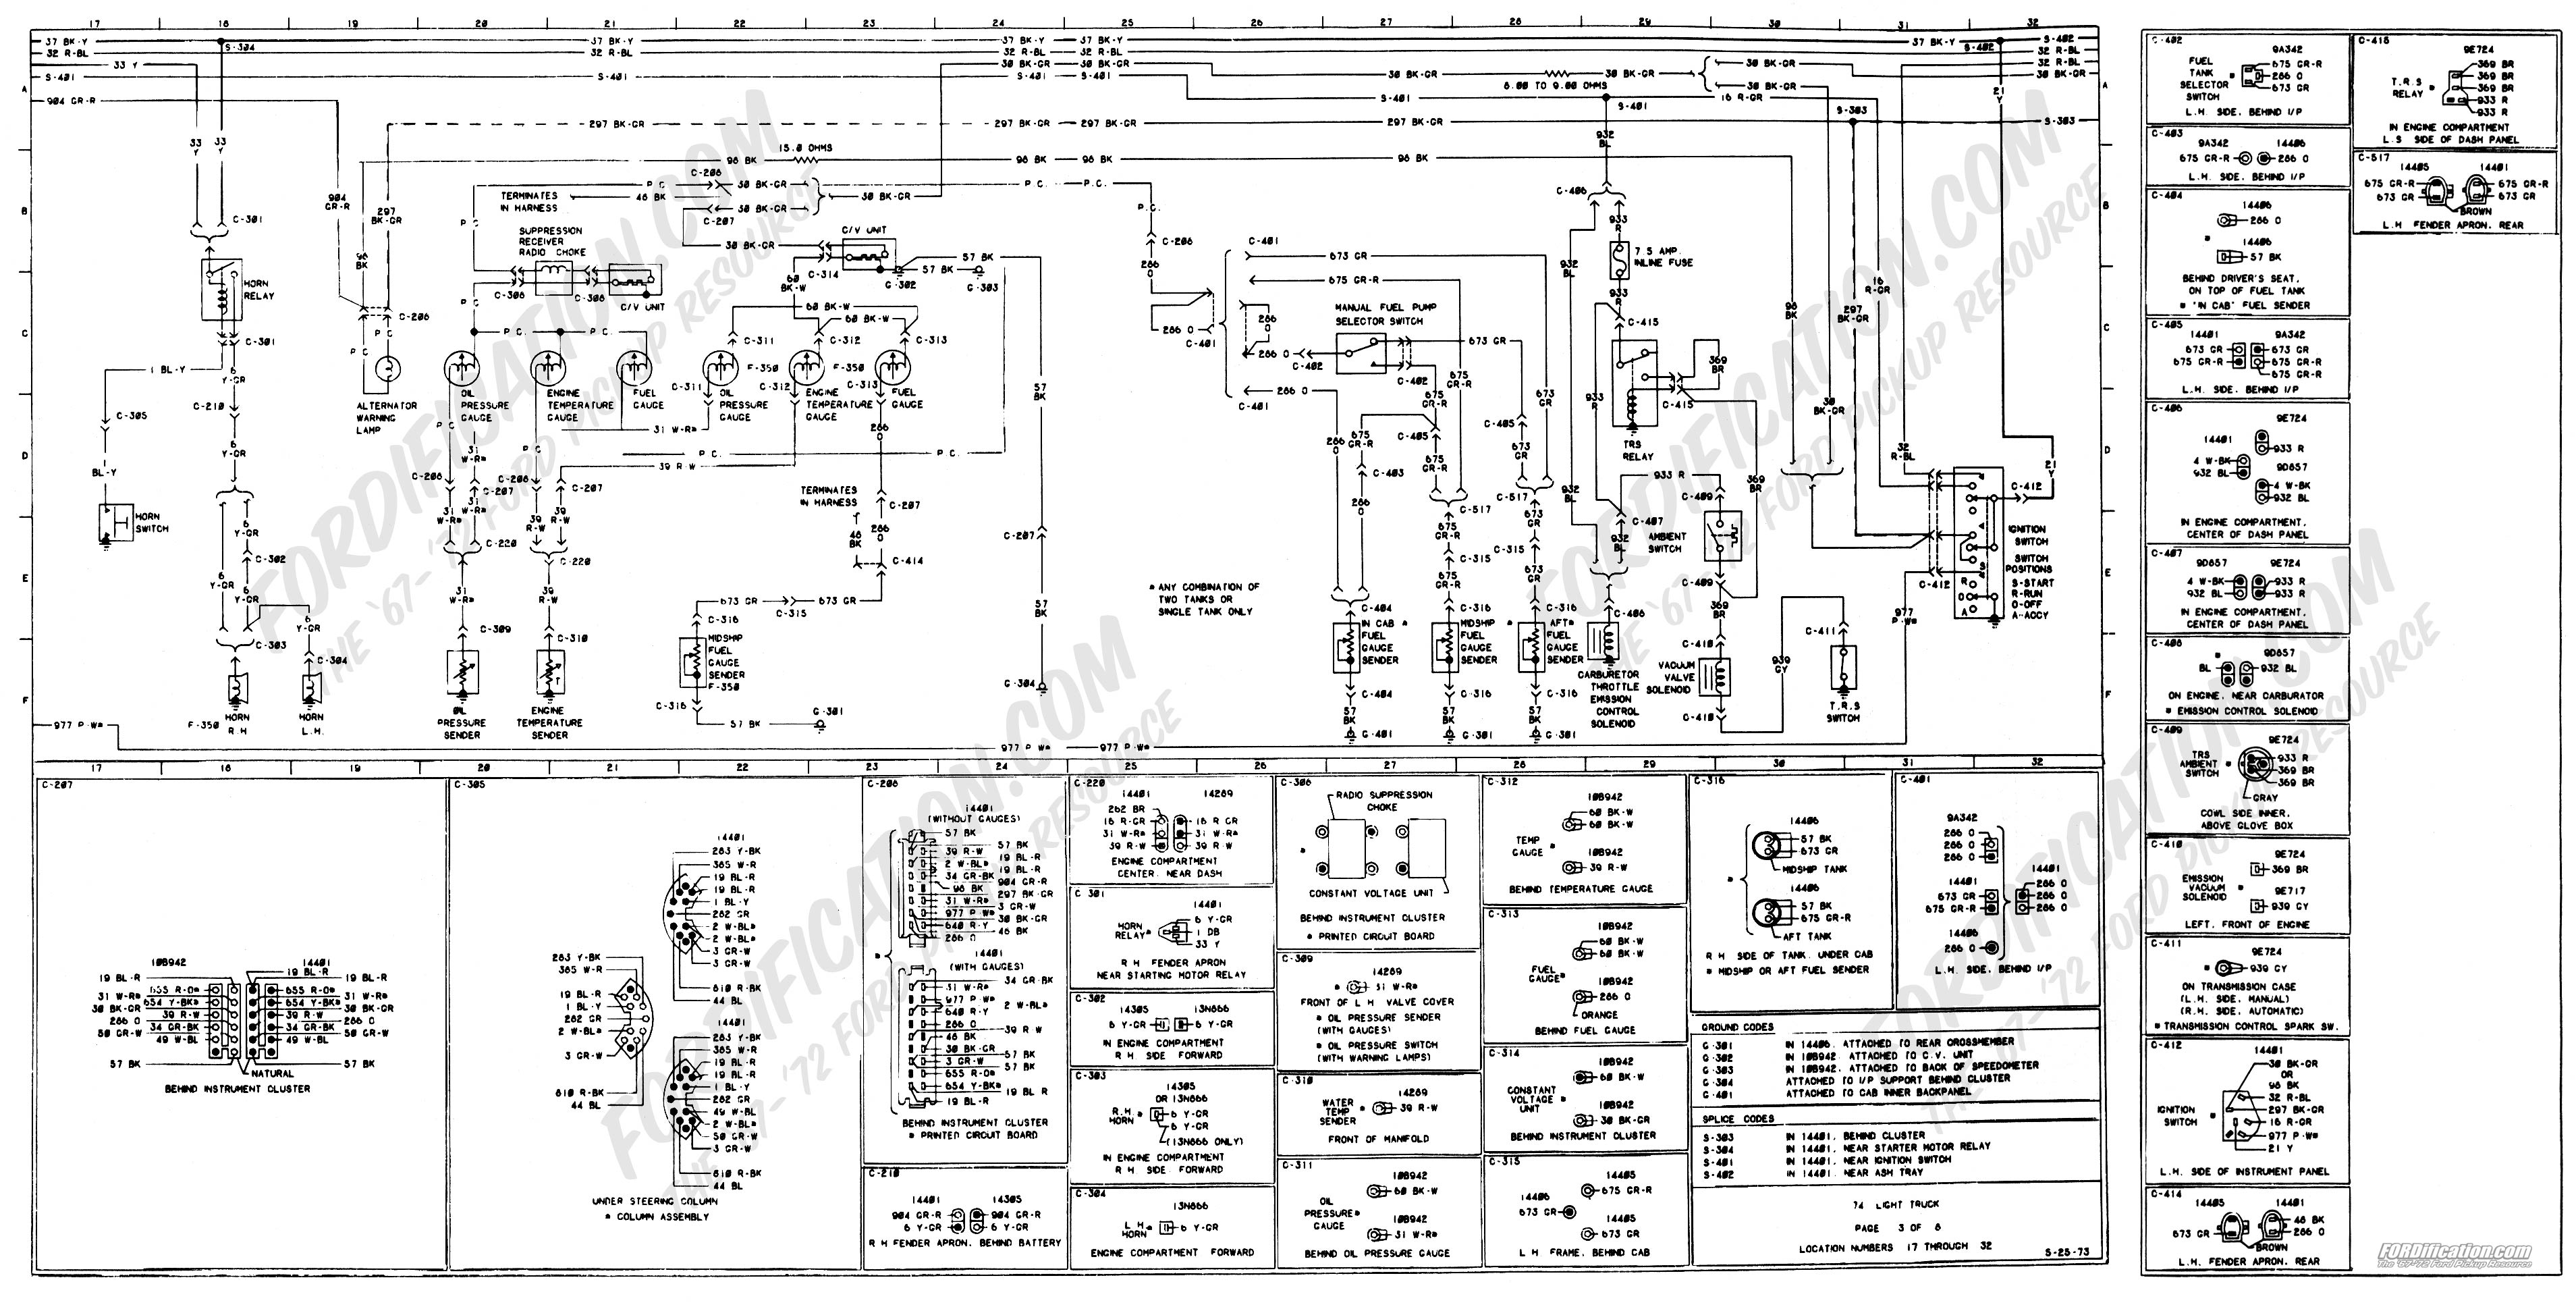 1974 F100 Ignition Switch Wiring Diagram Third Level 79 Mustang 1973 1979 Ford Truck Diagrams Schematics Fordification Net 1975